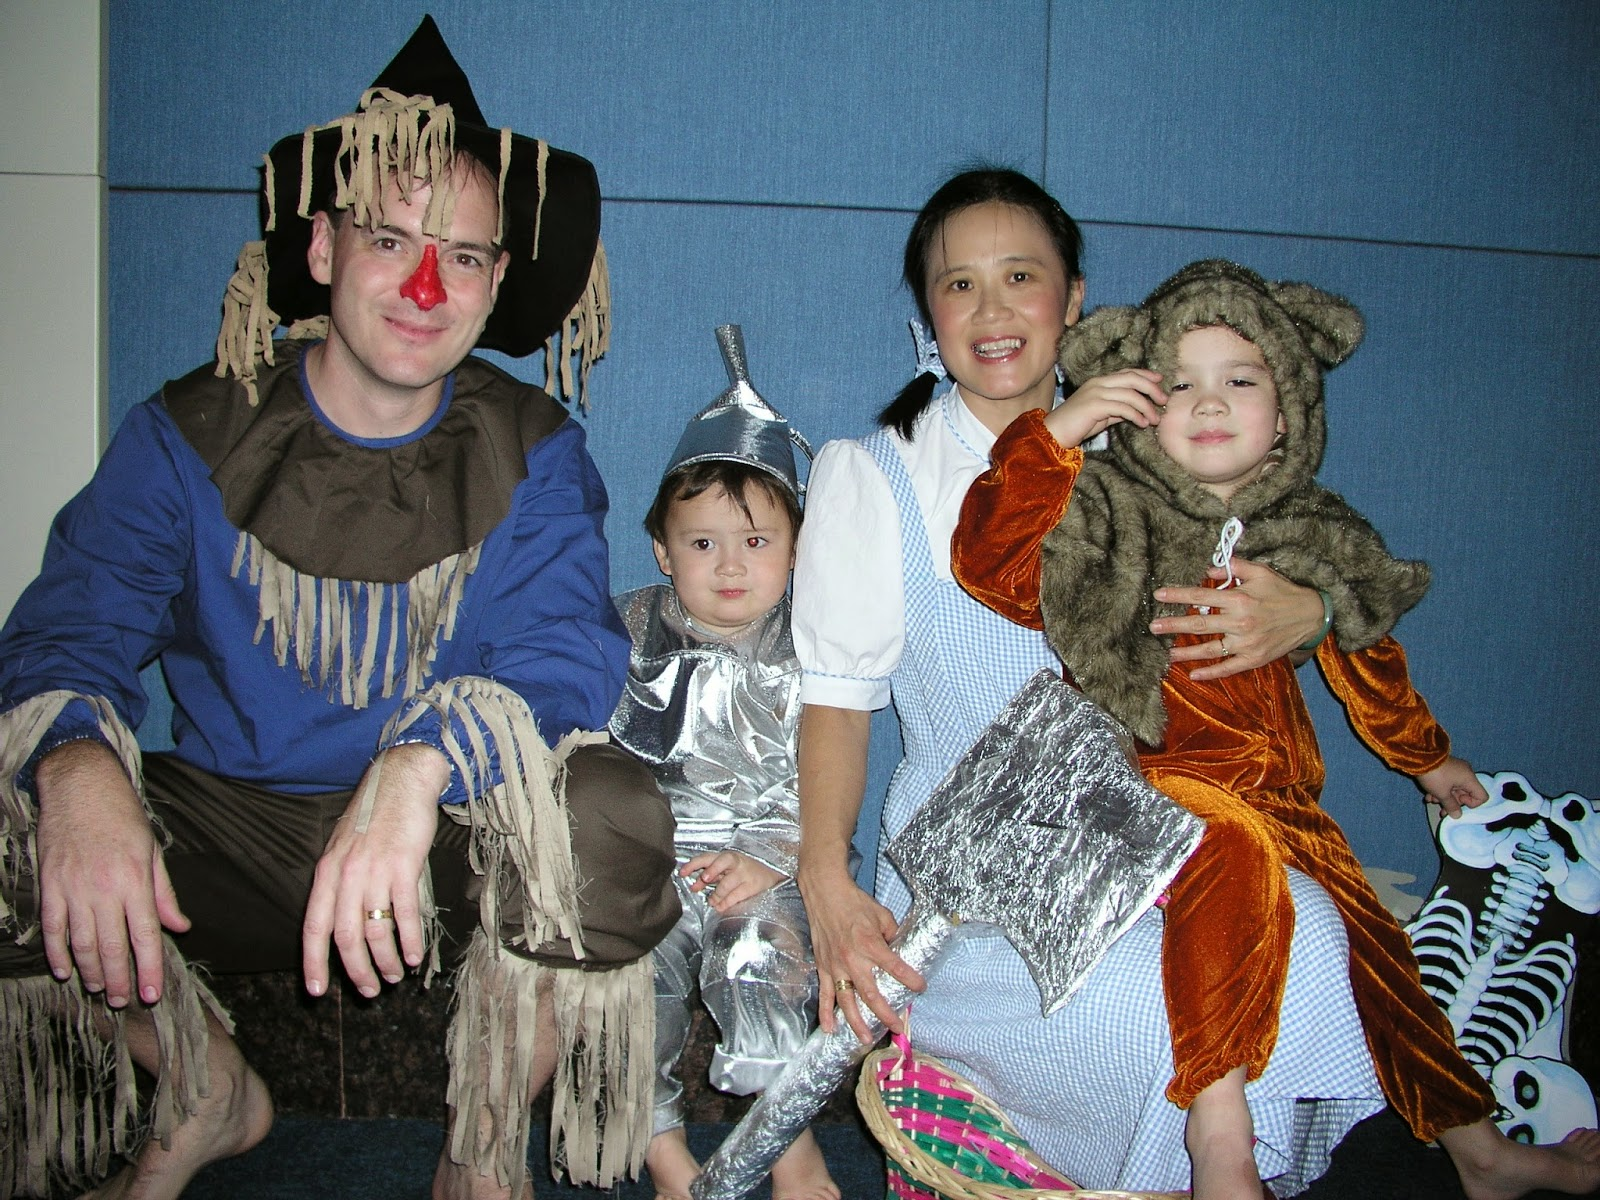 hopkins-nanjing center blog: throwback thursday: halloween at the hnc